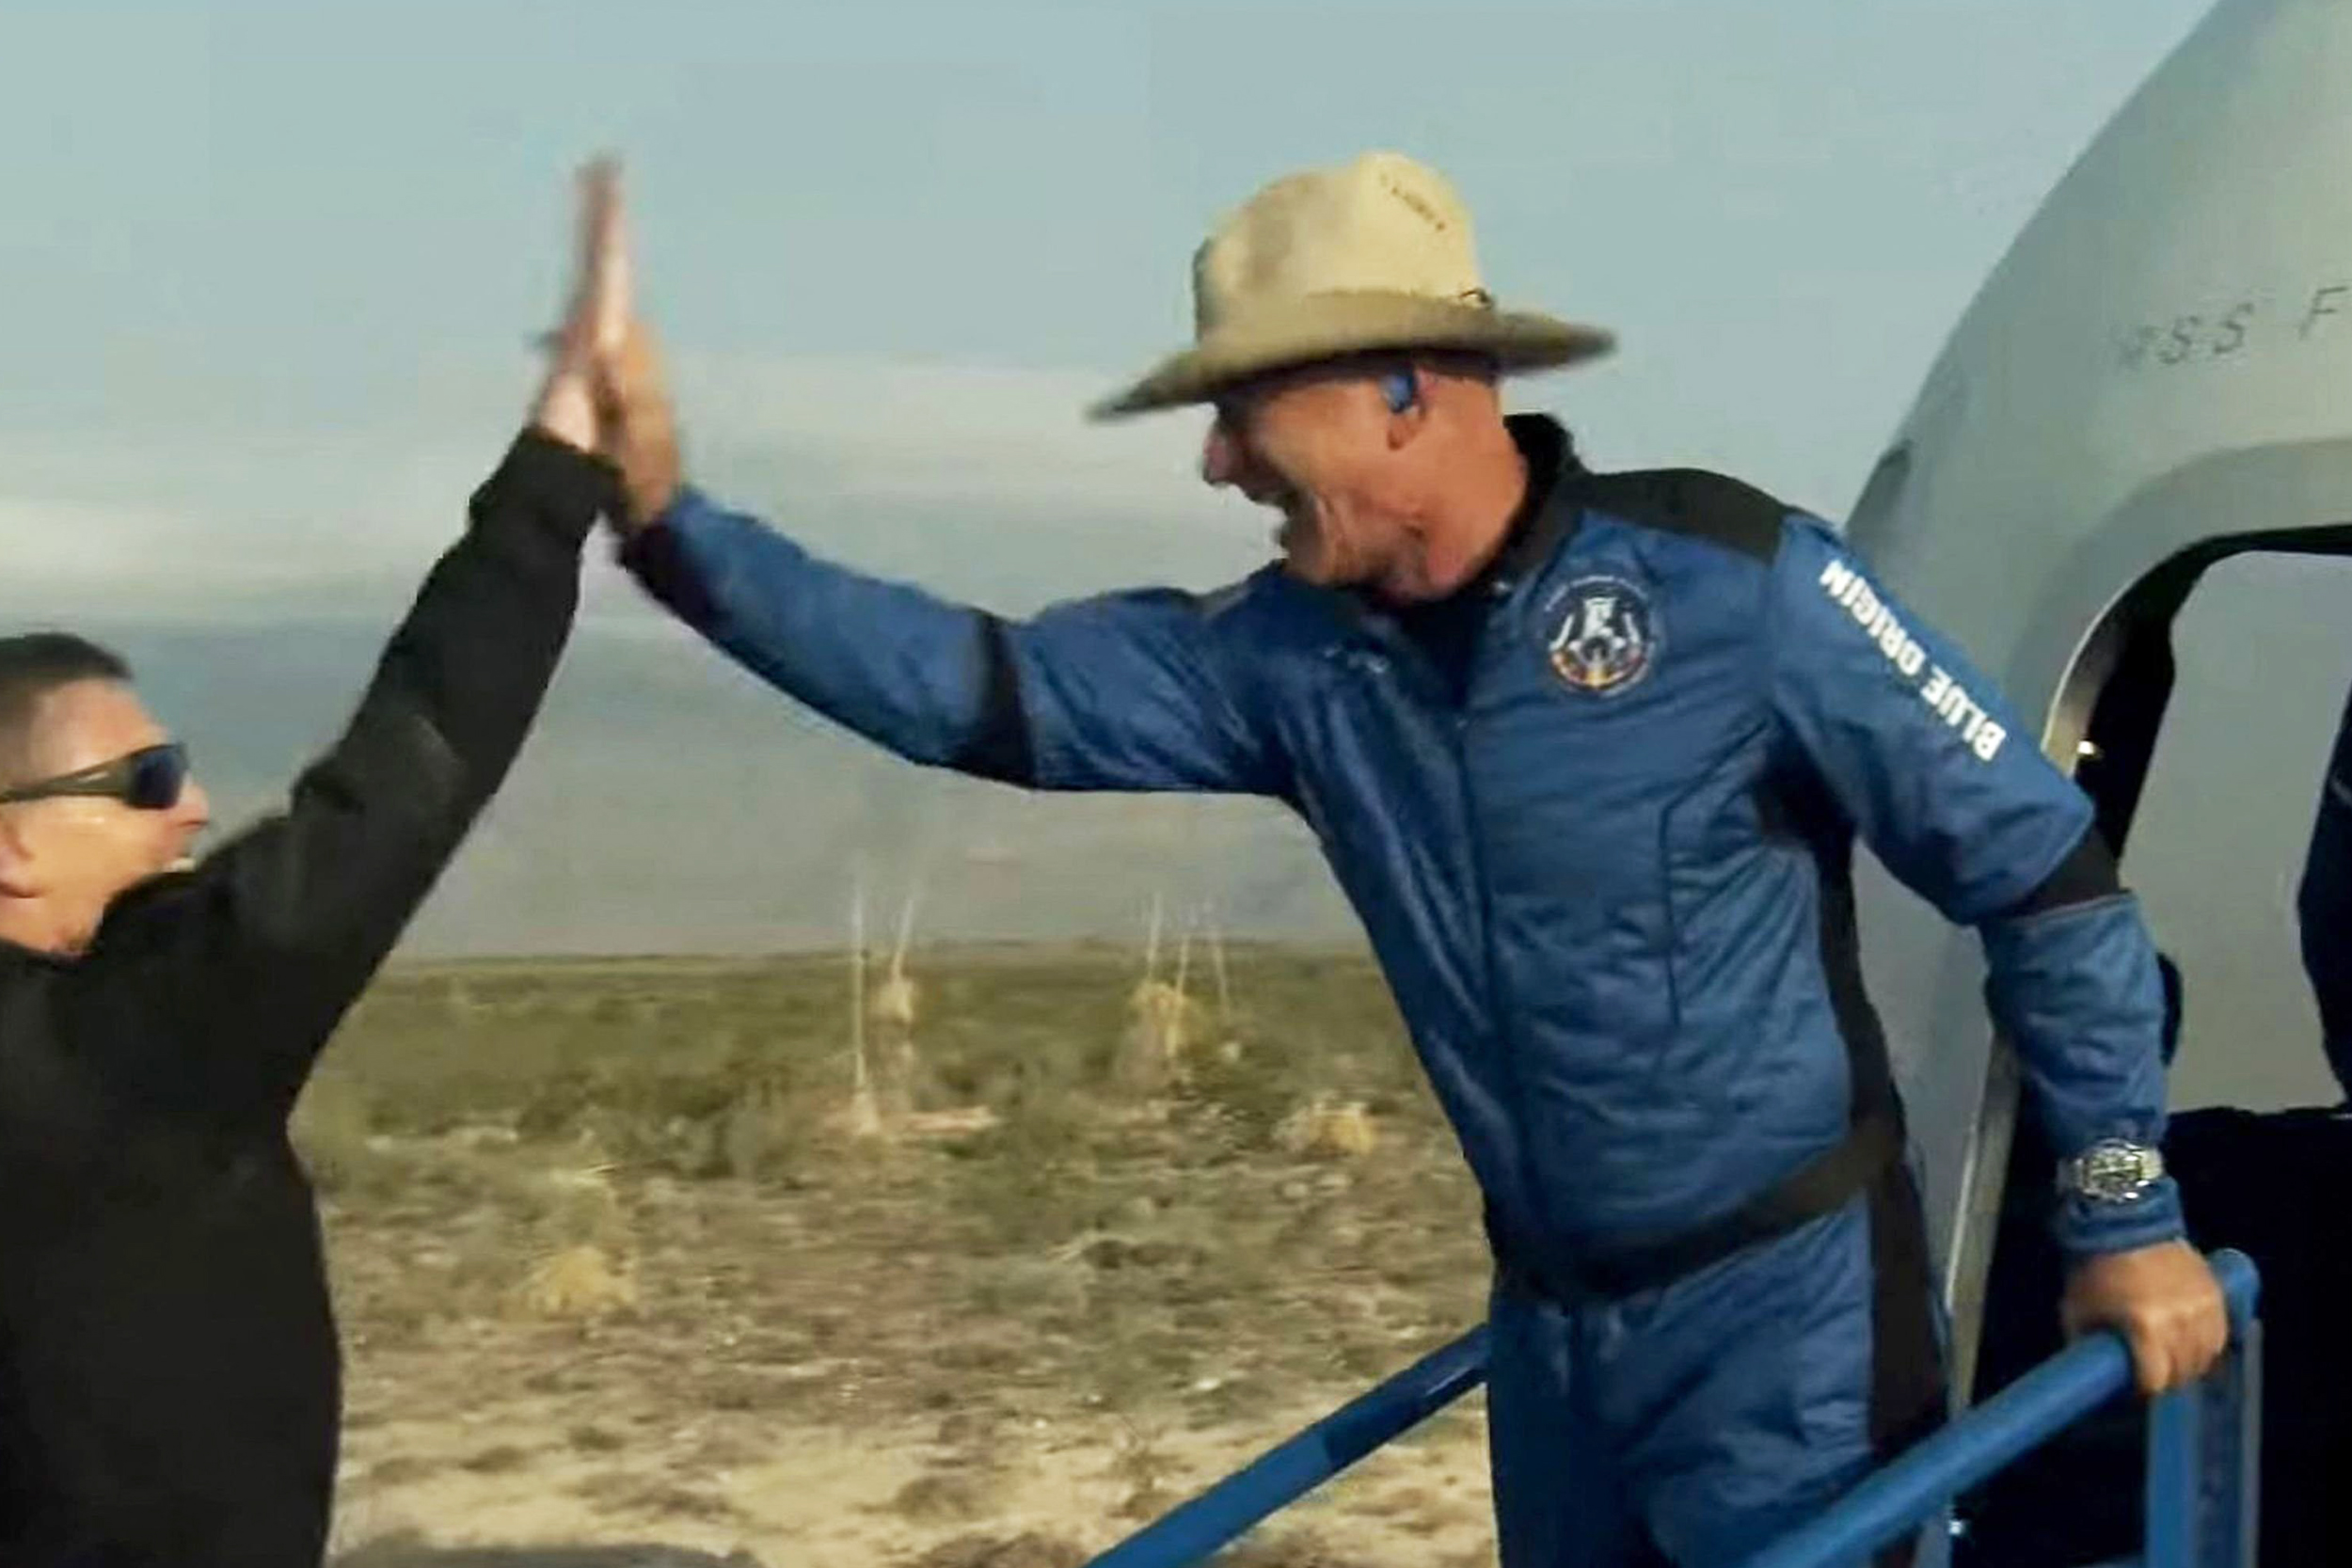 'There are no words': Bezos says space mission changed him, reinforces climate change fight